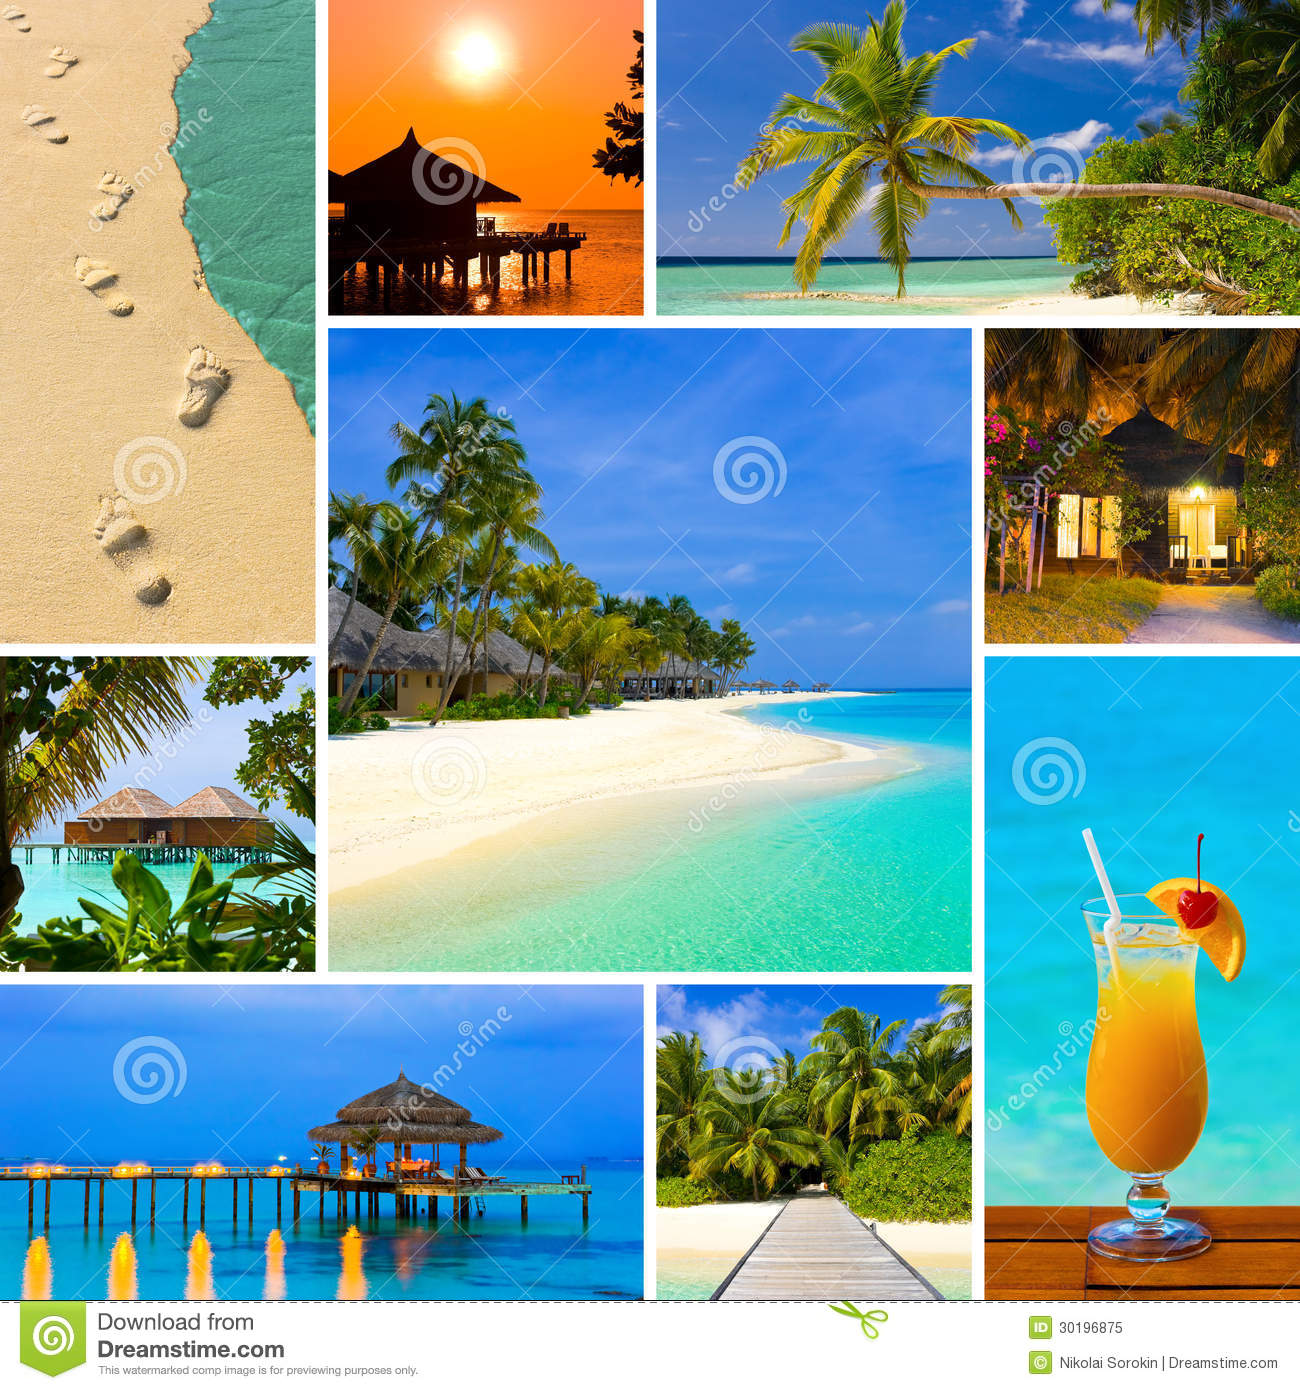 Collage Summer Beach Maldives Royalty Free Stock Image